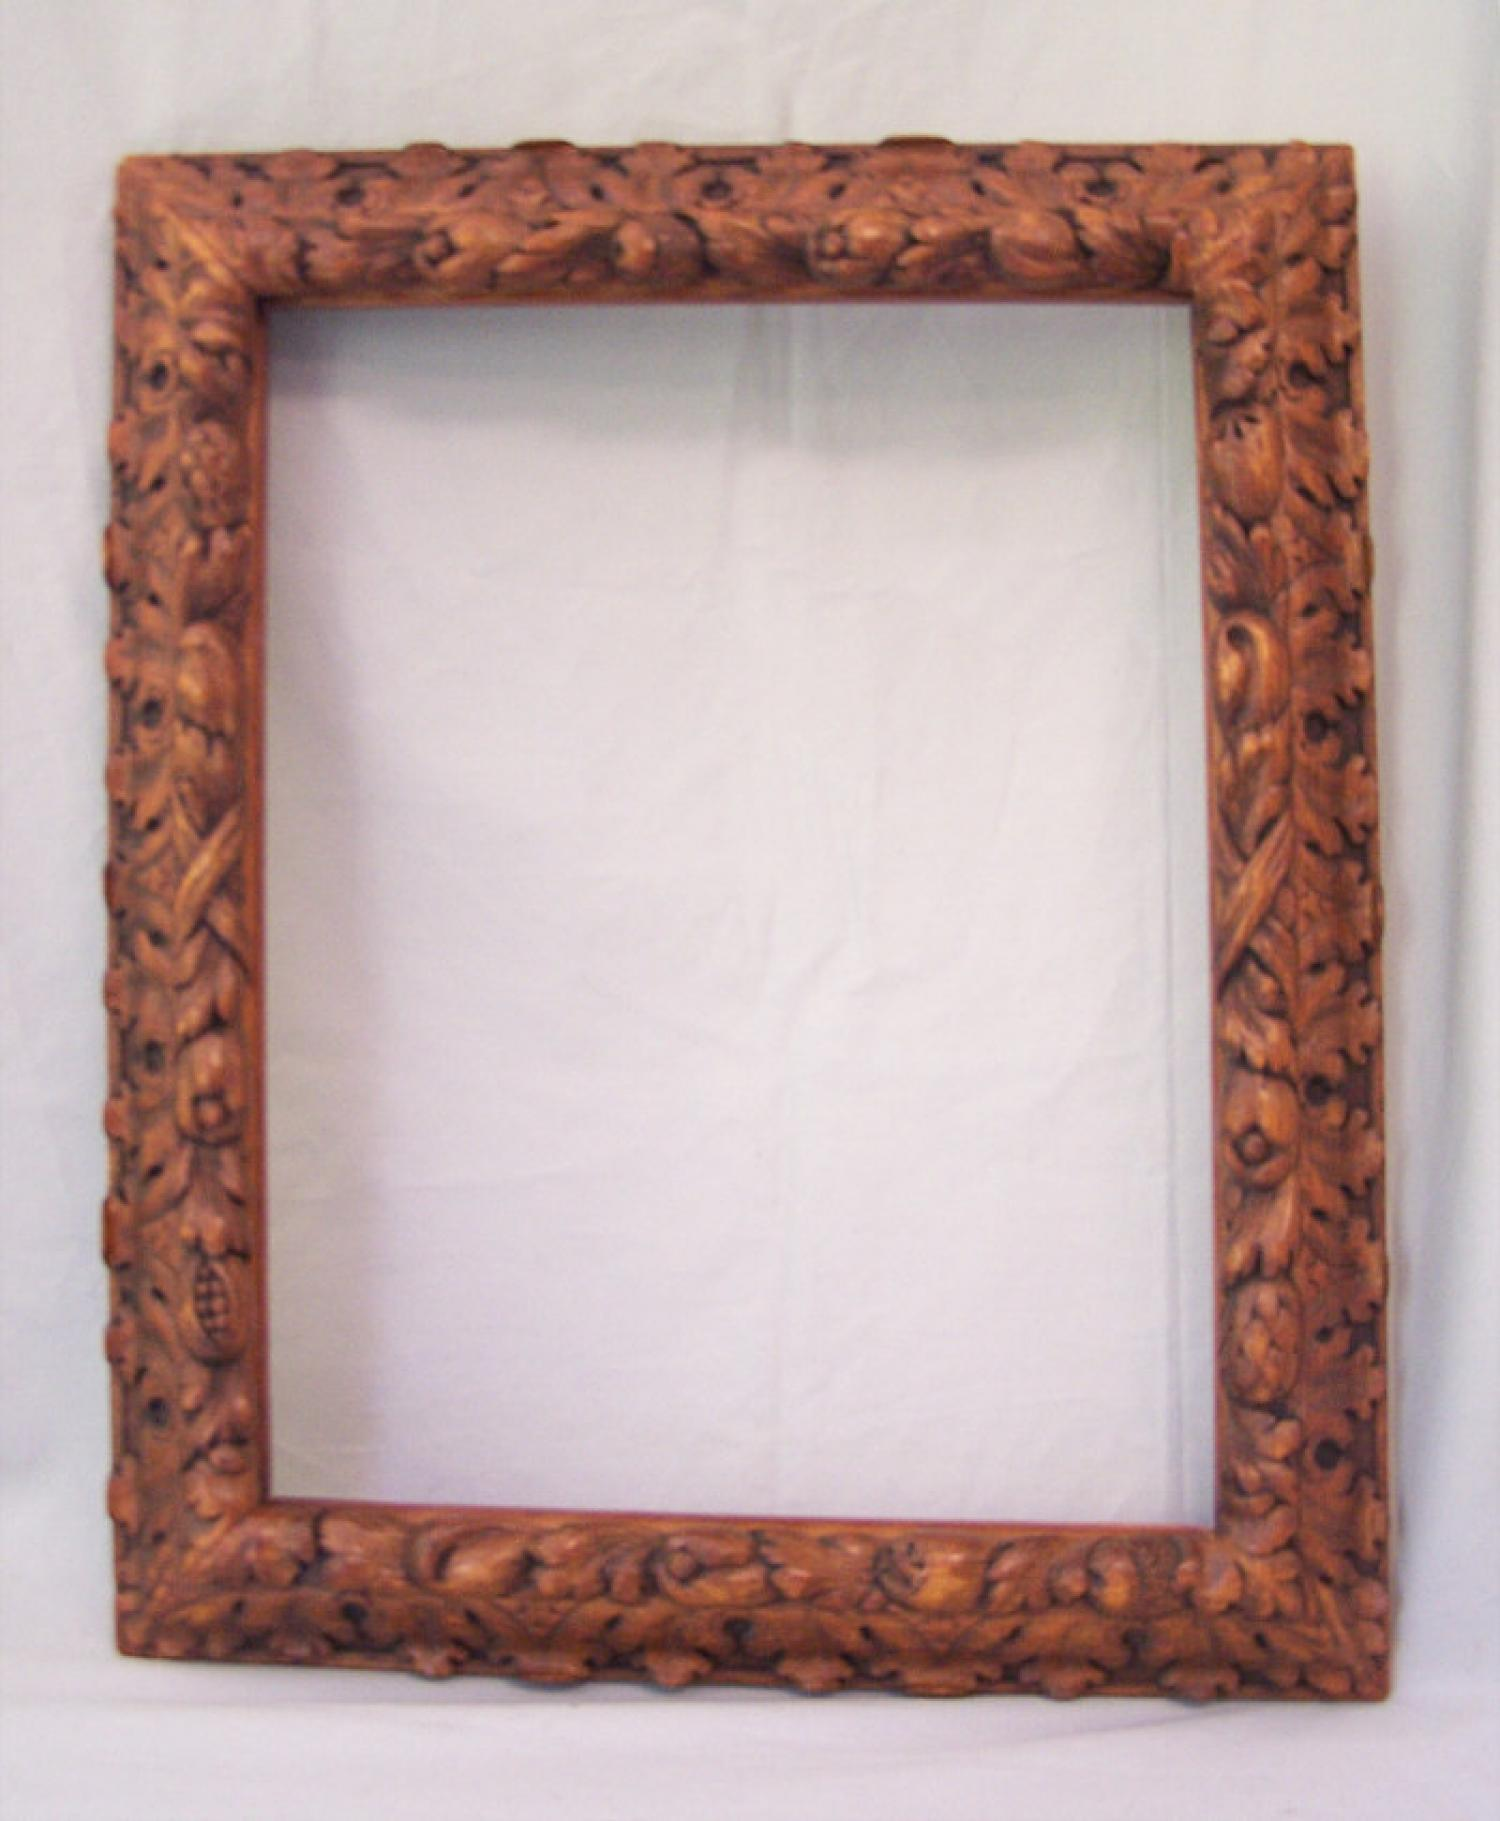 Reniassance style carved wood picture frame 19th century